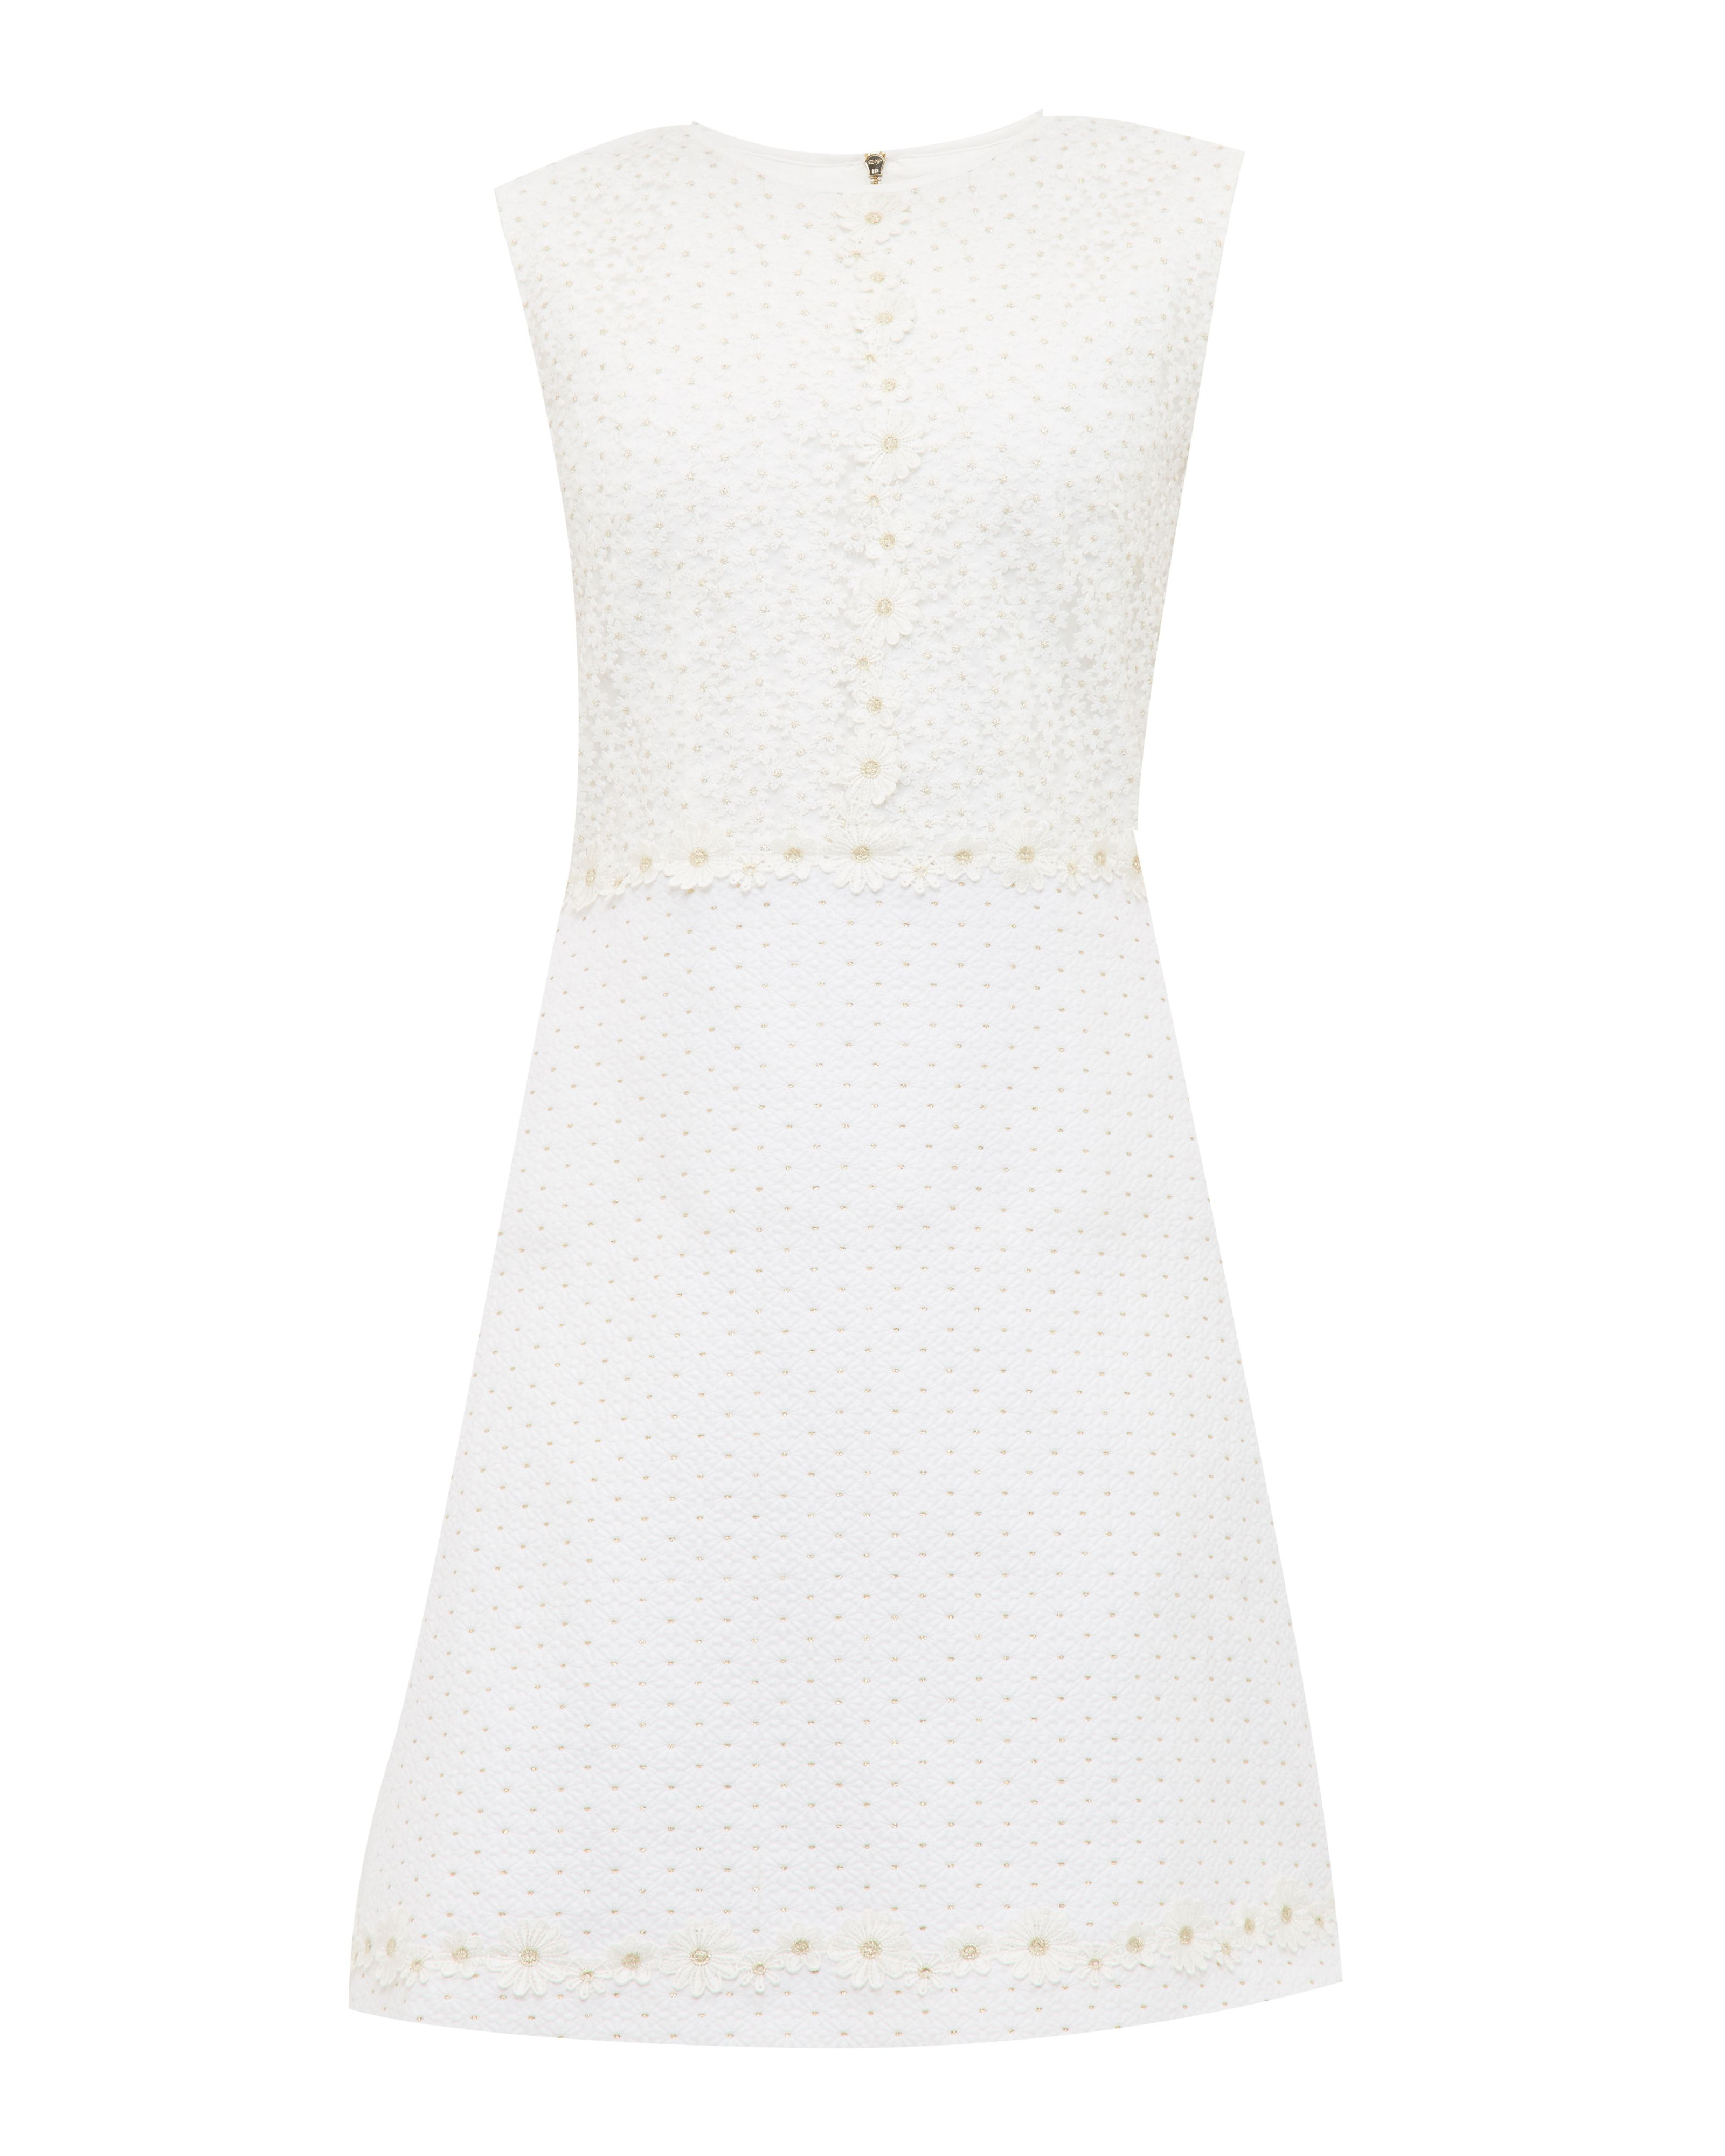 Ted Baker Olara Daisy Lace Shift Dress, White